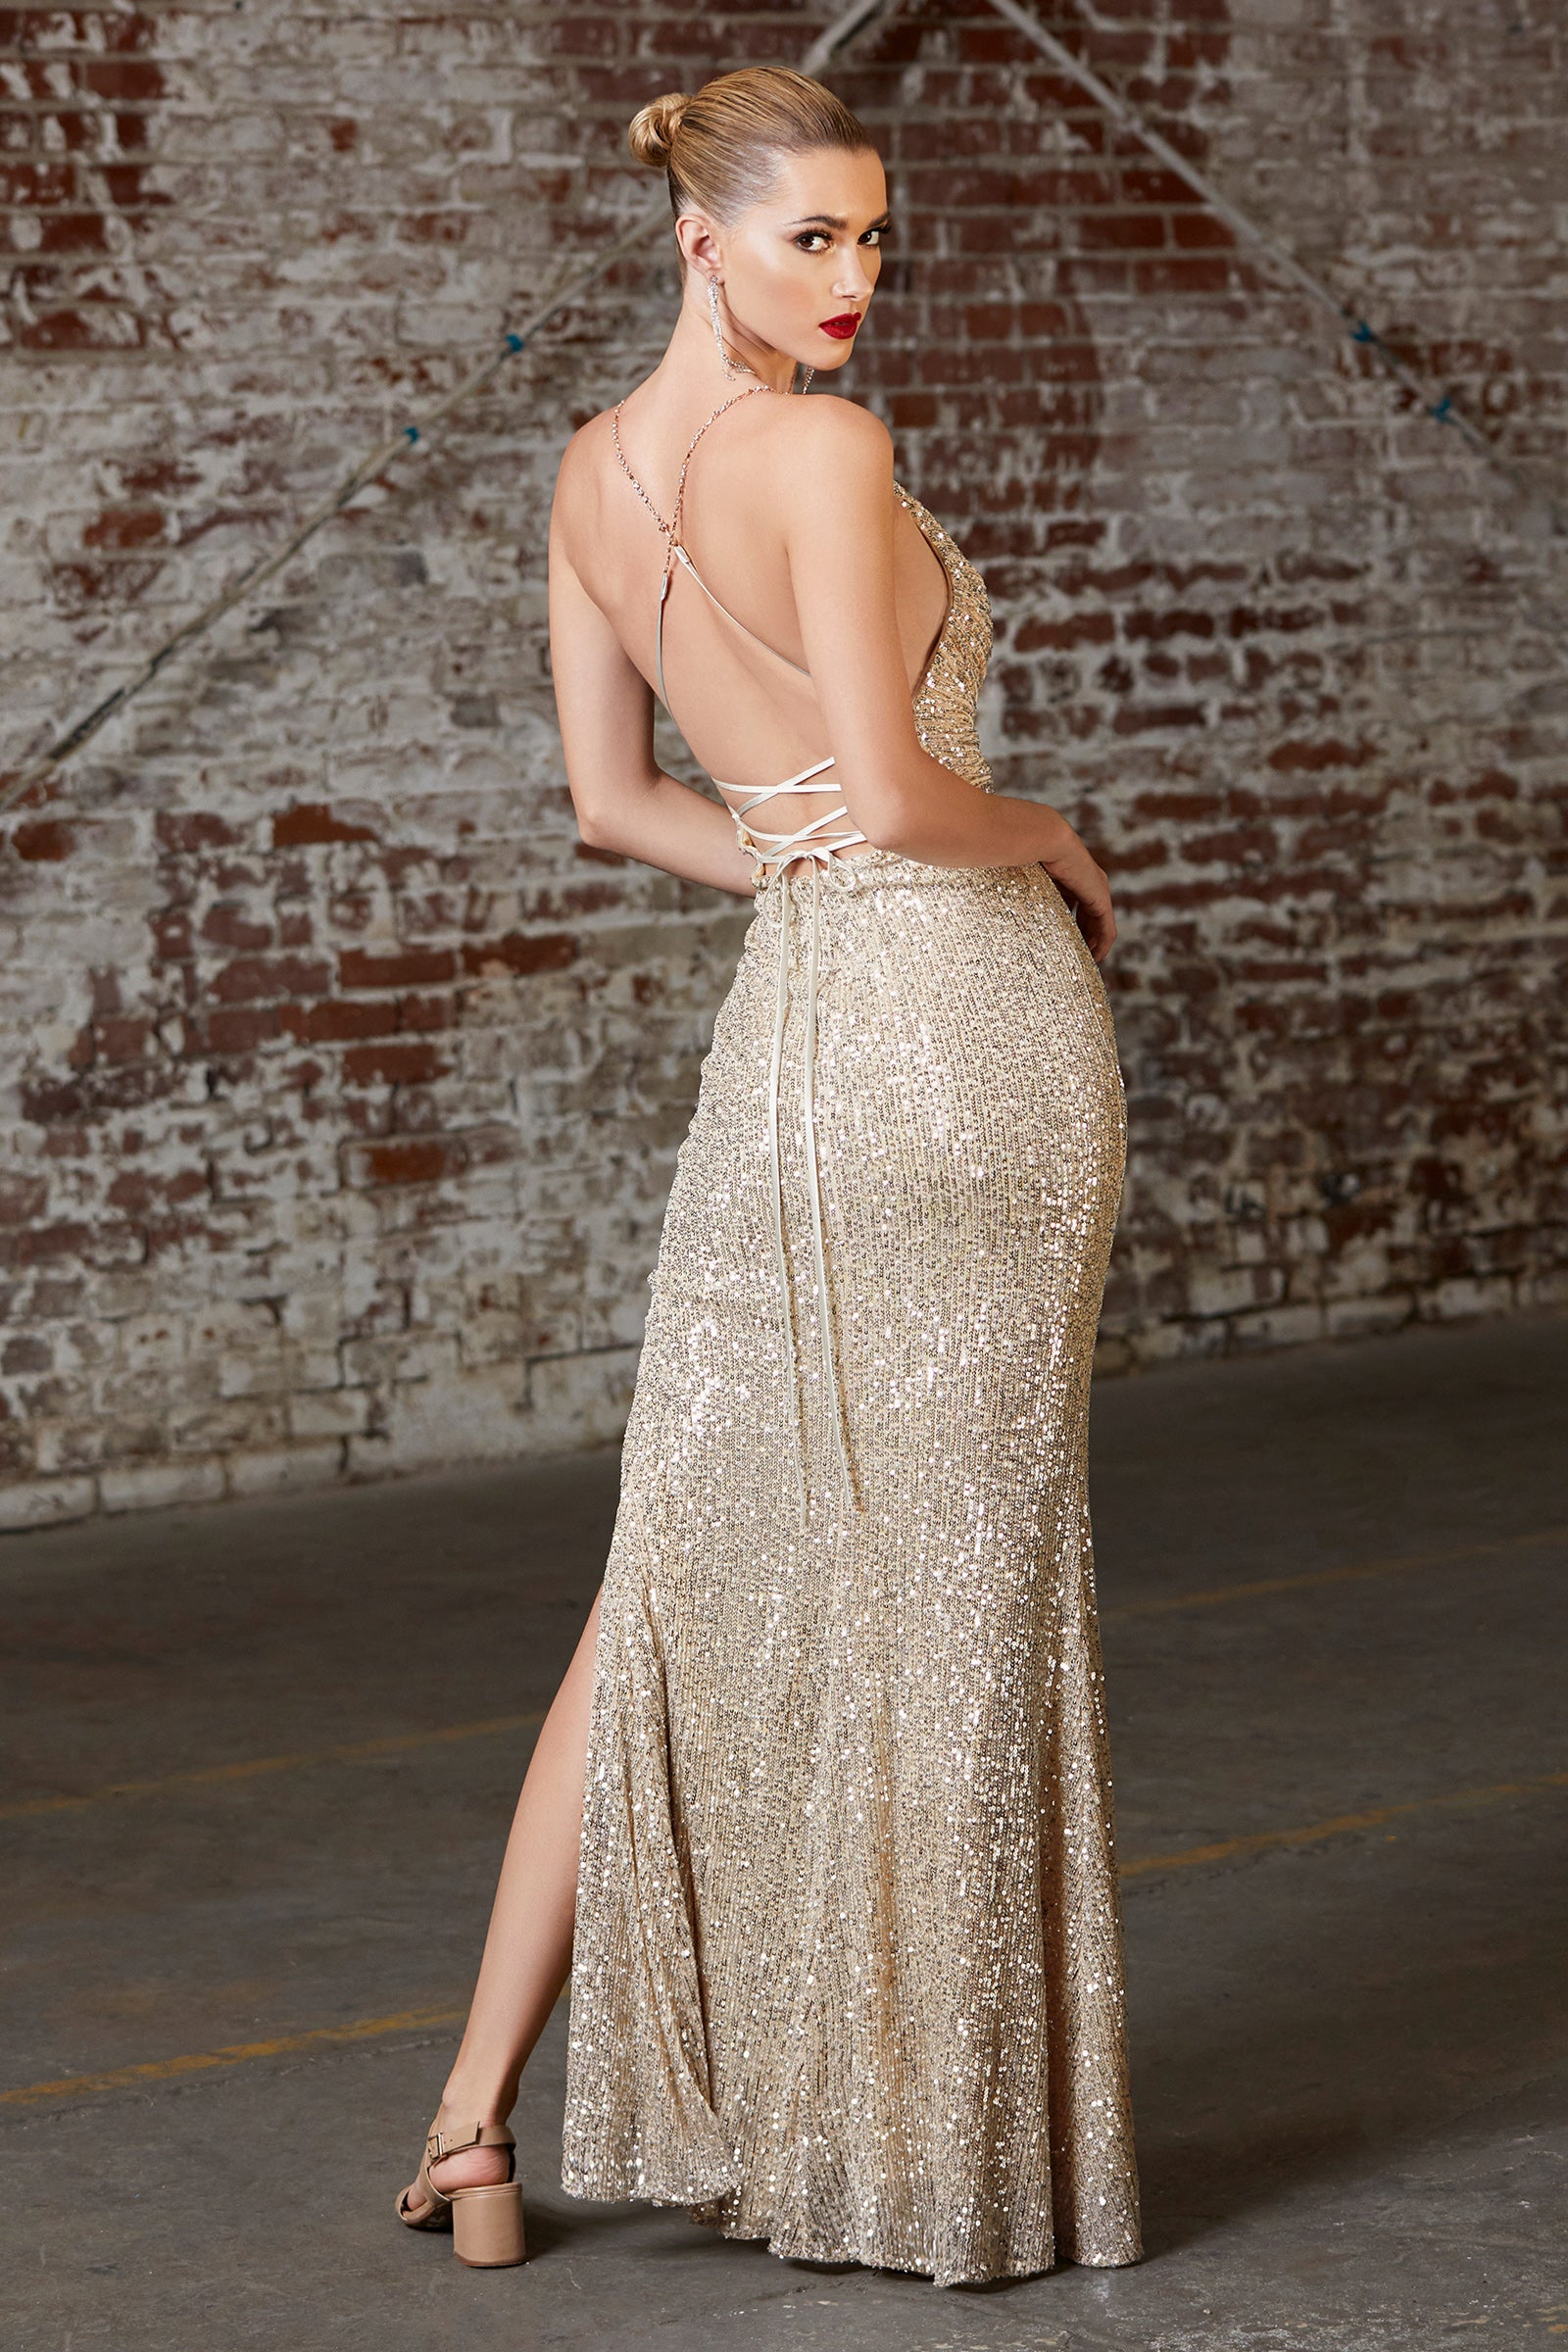 Cf199 gold sequins prom dress with open back